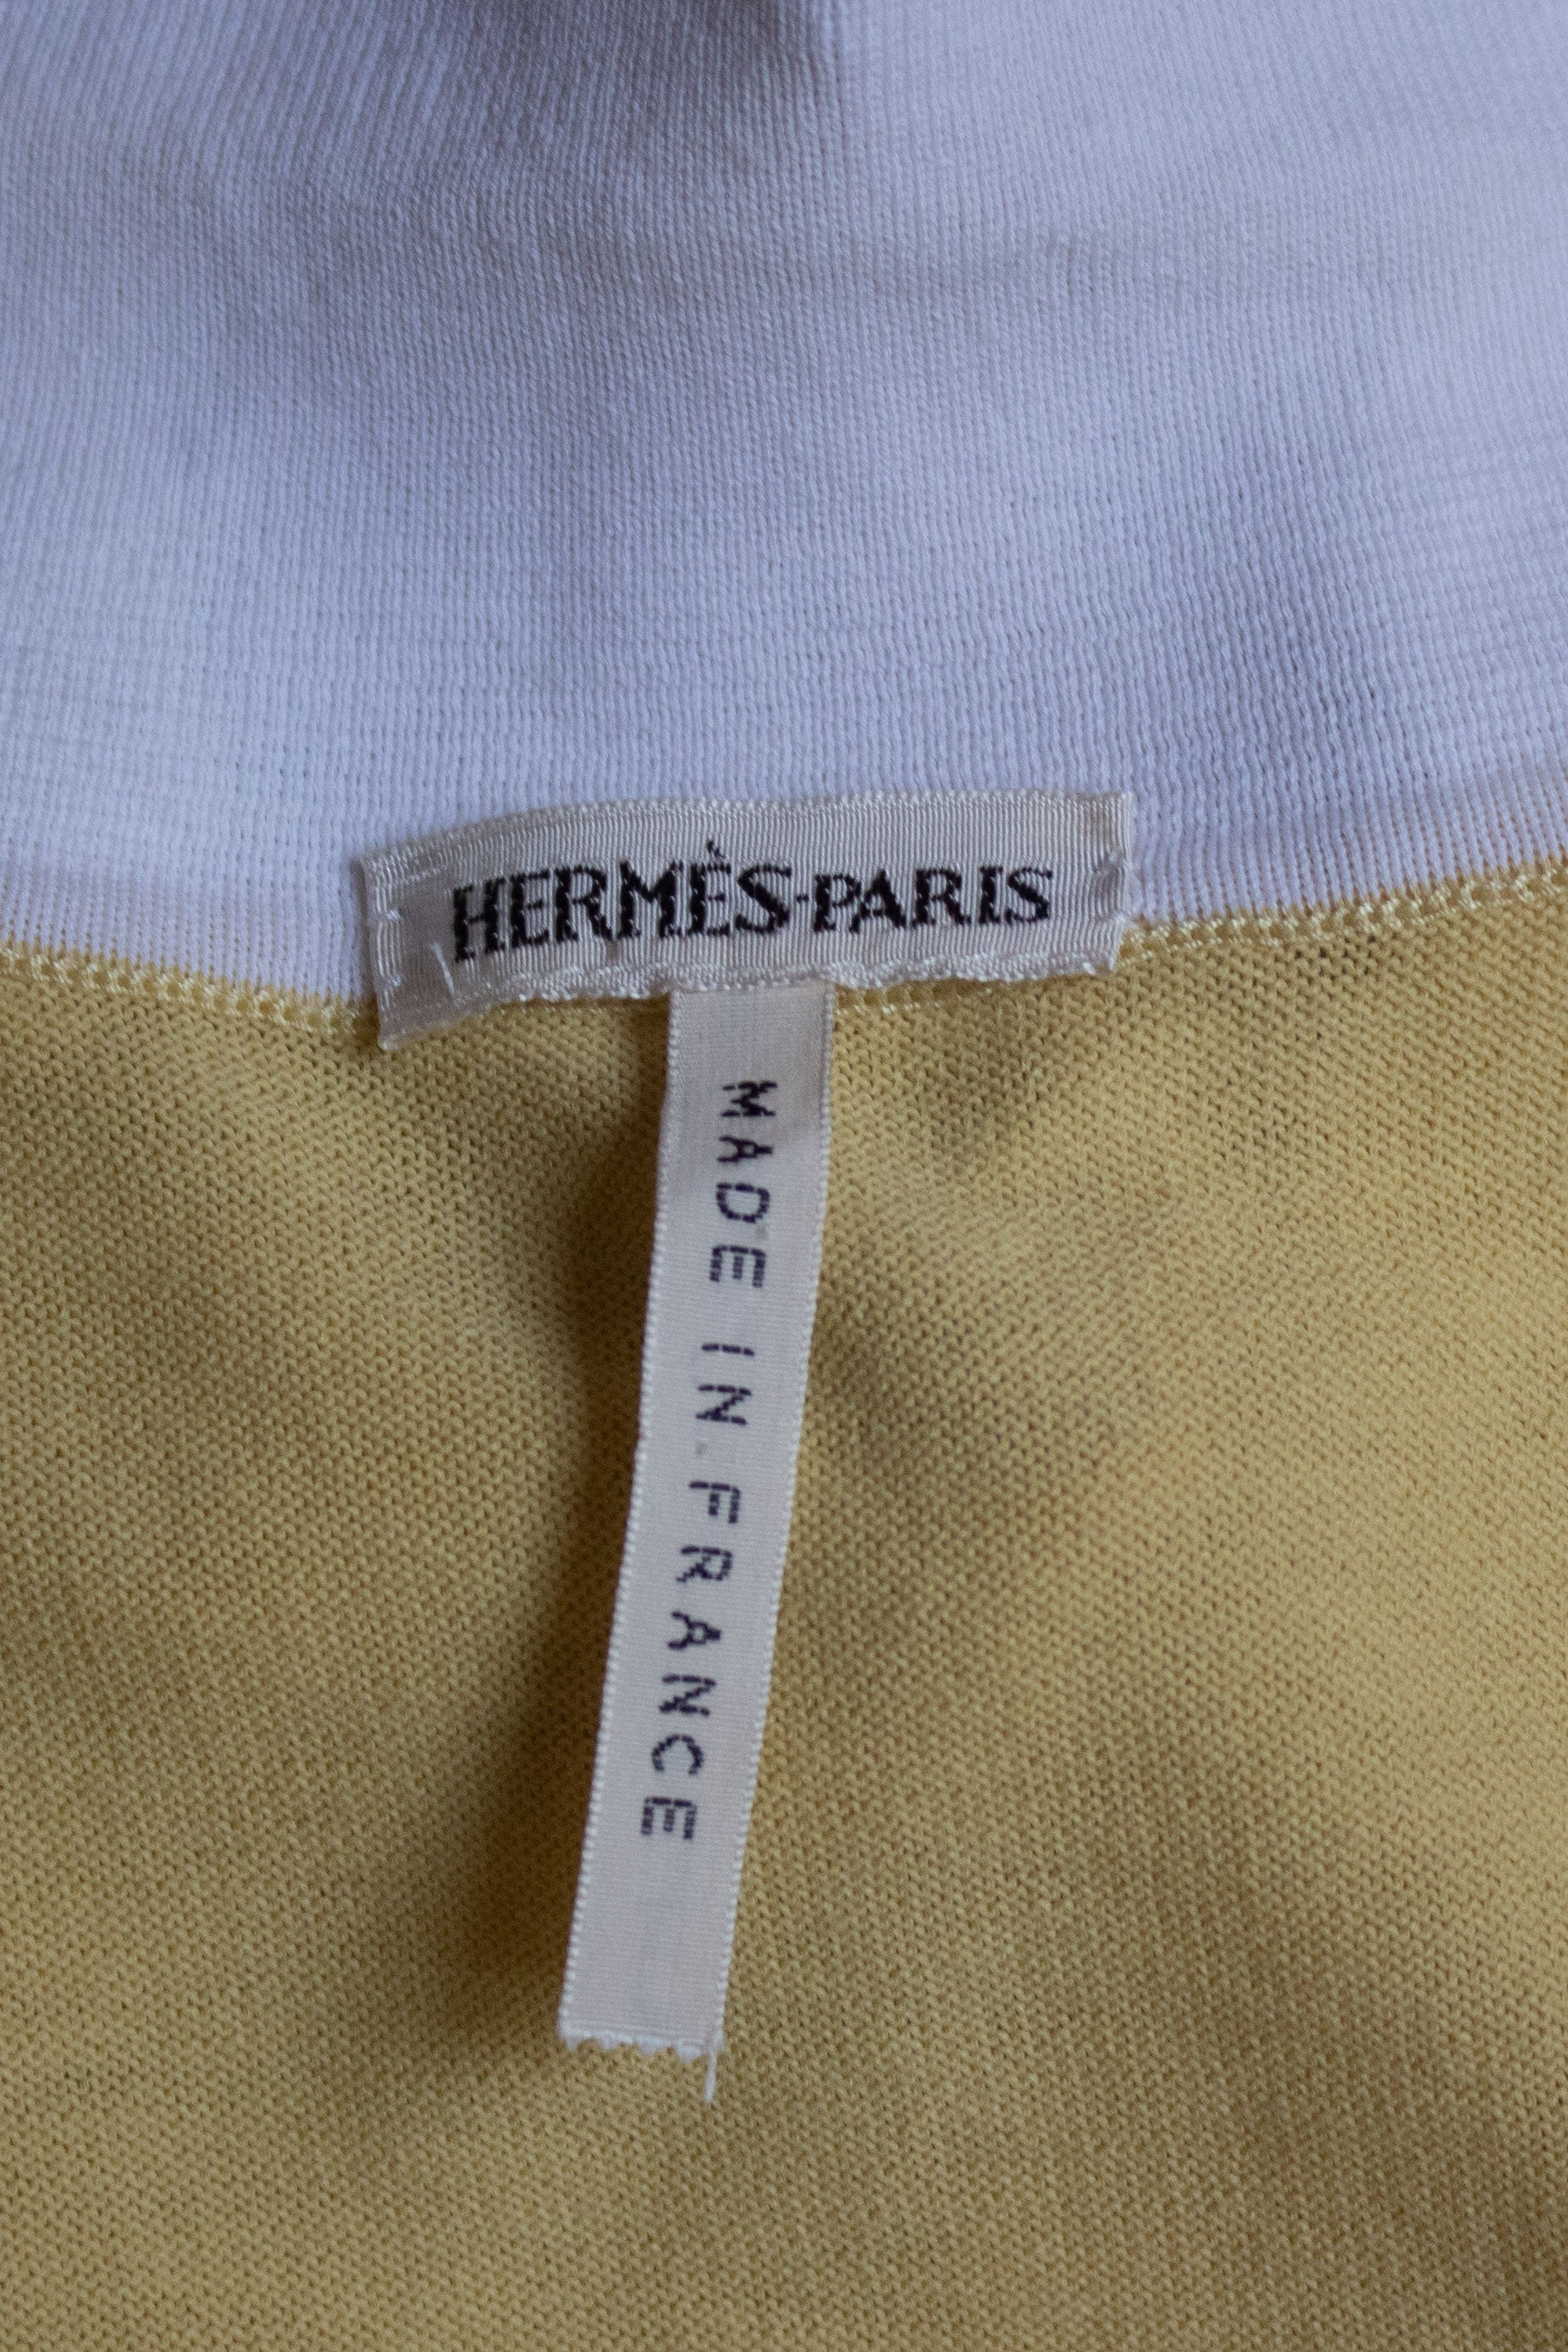 Hermes by Martin Margiela yellow cotton sleeveless knit